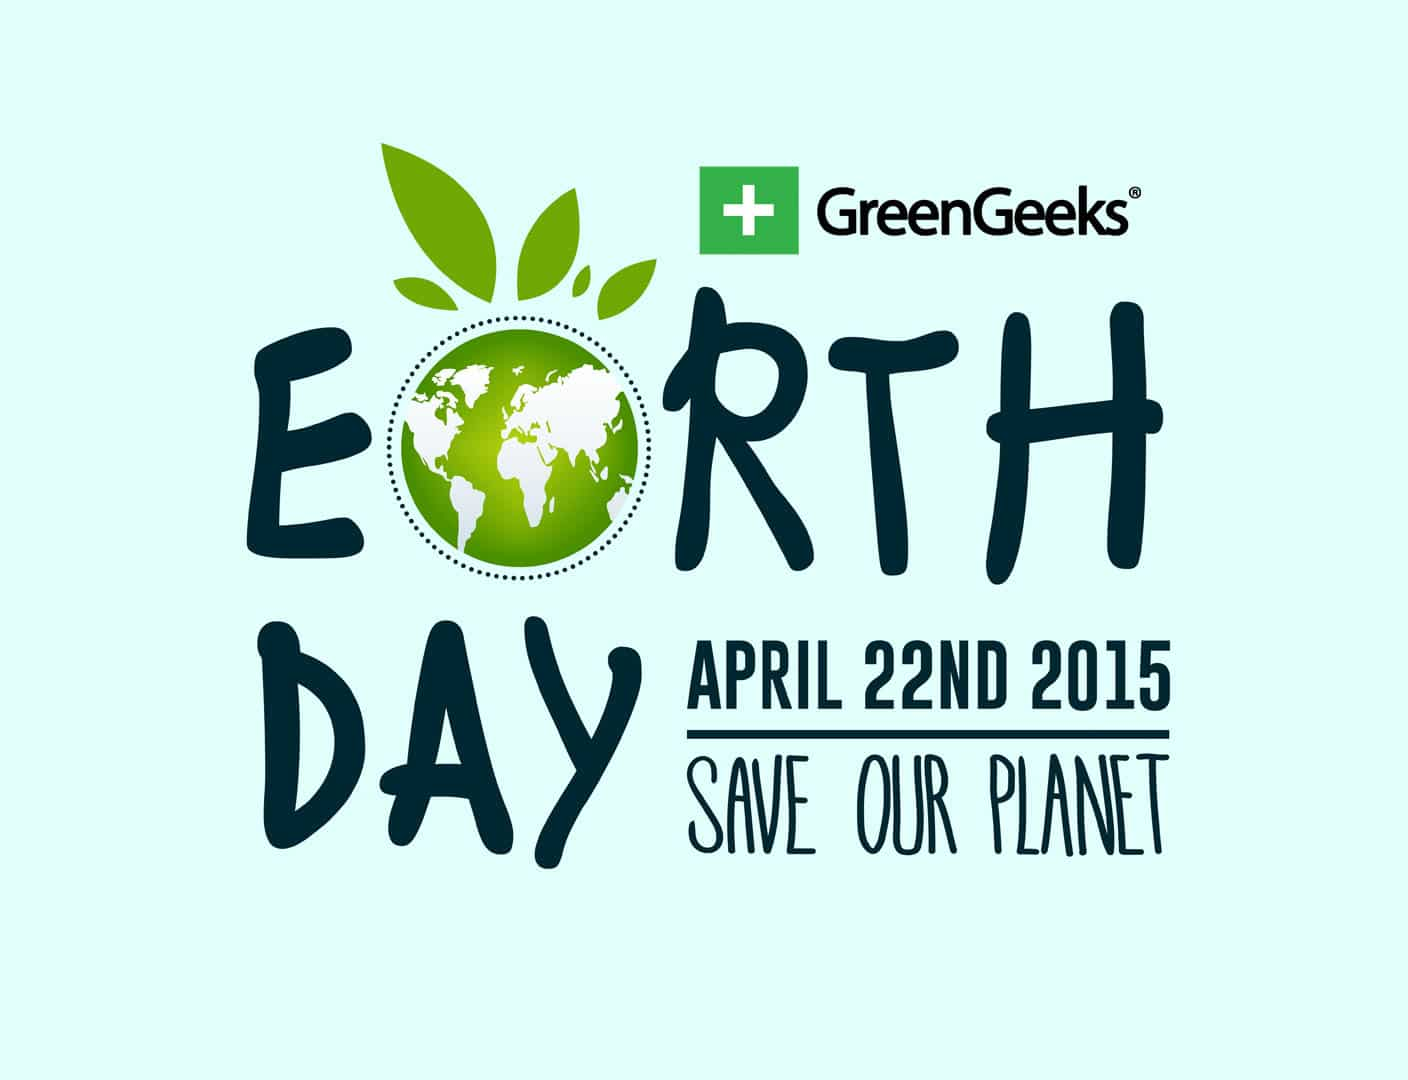 Earth Day - April 22 2015